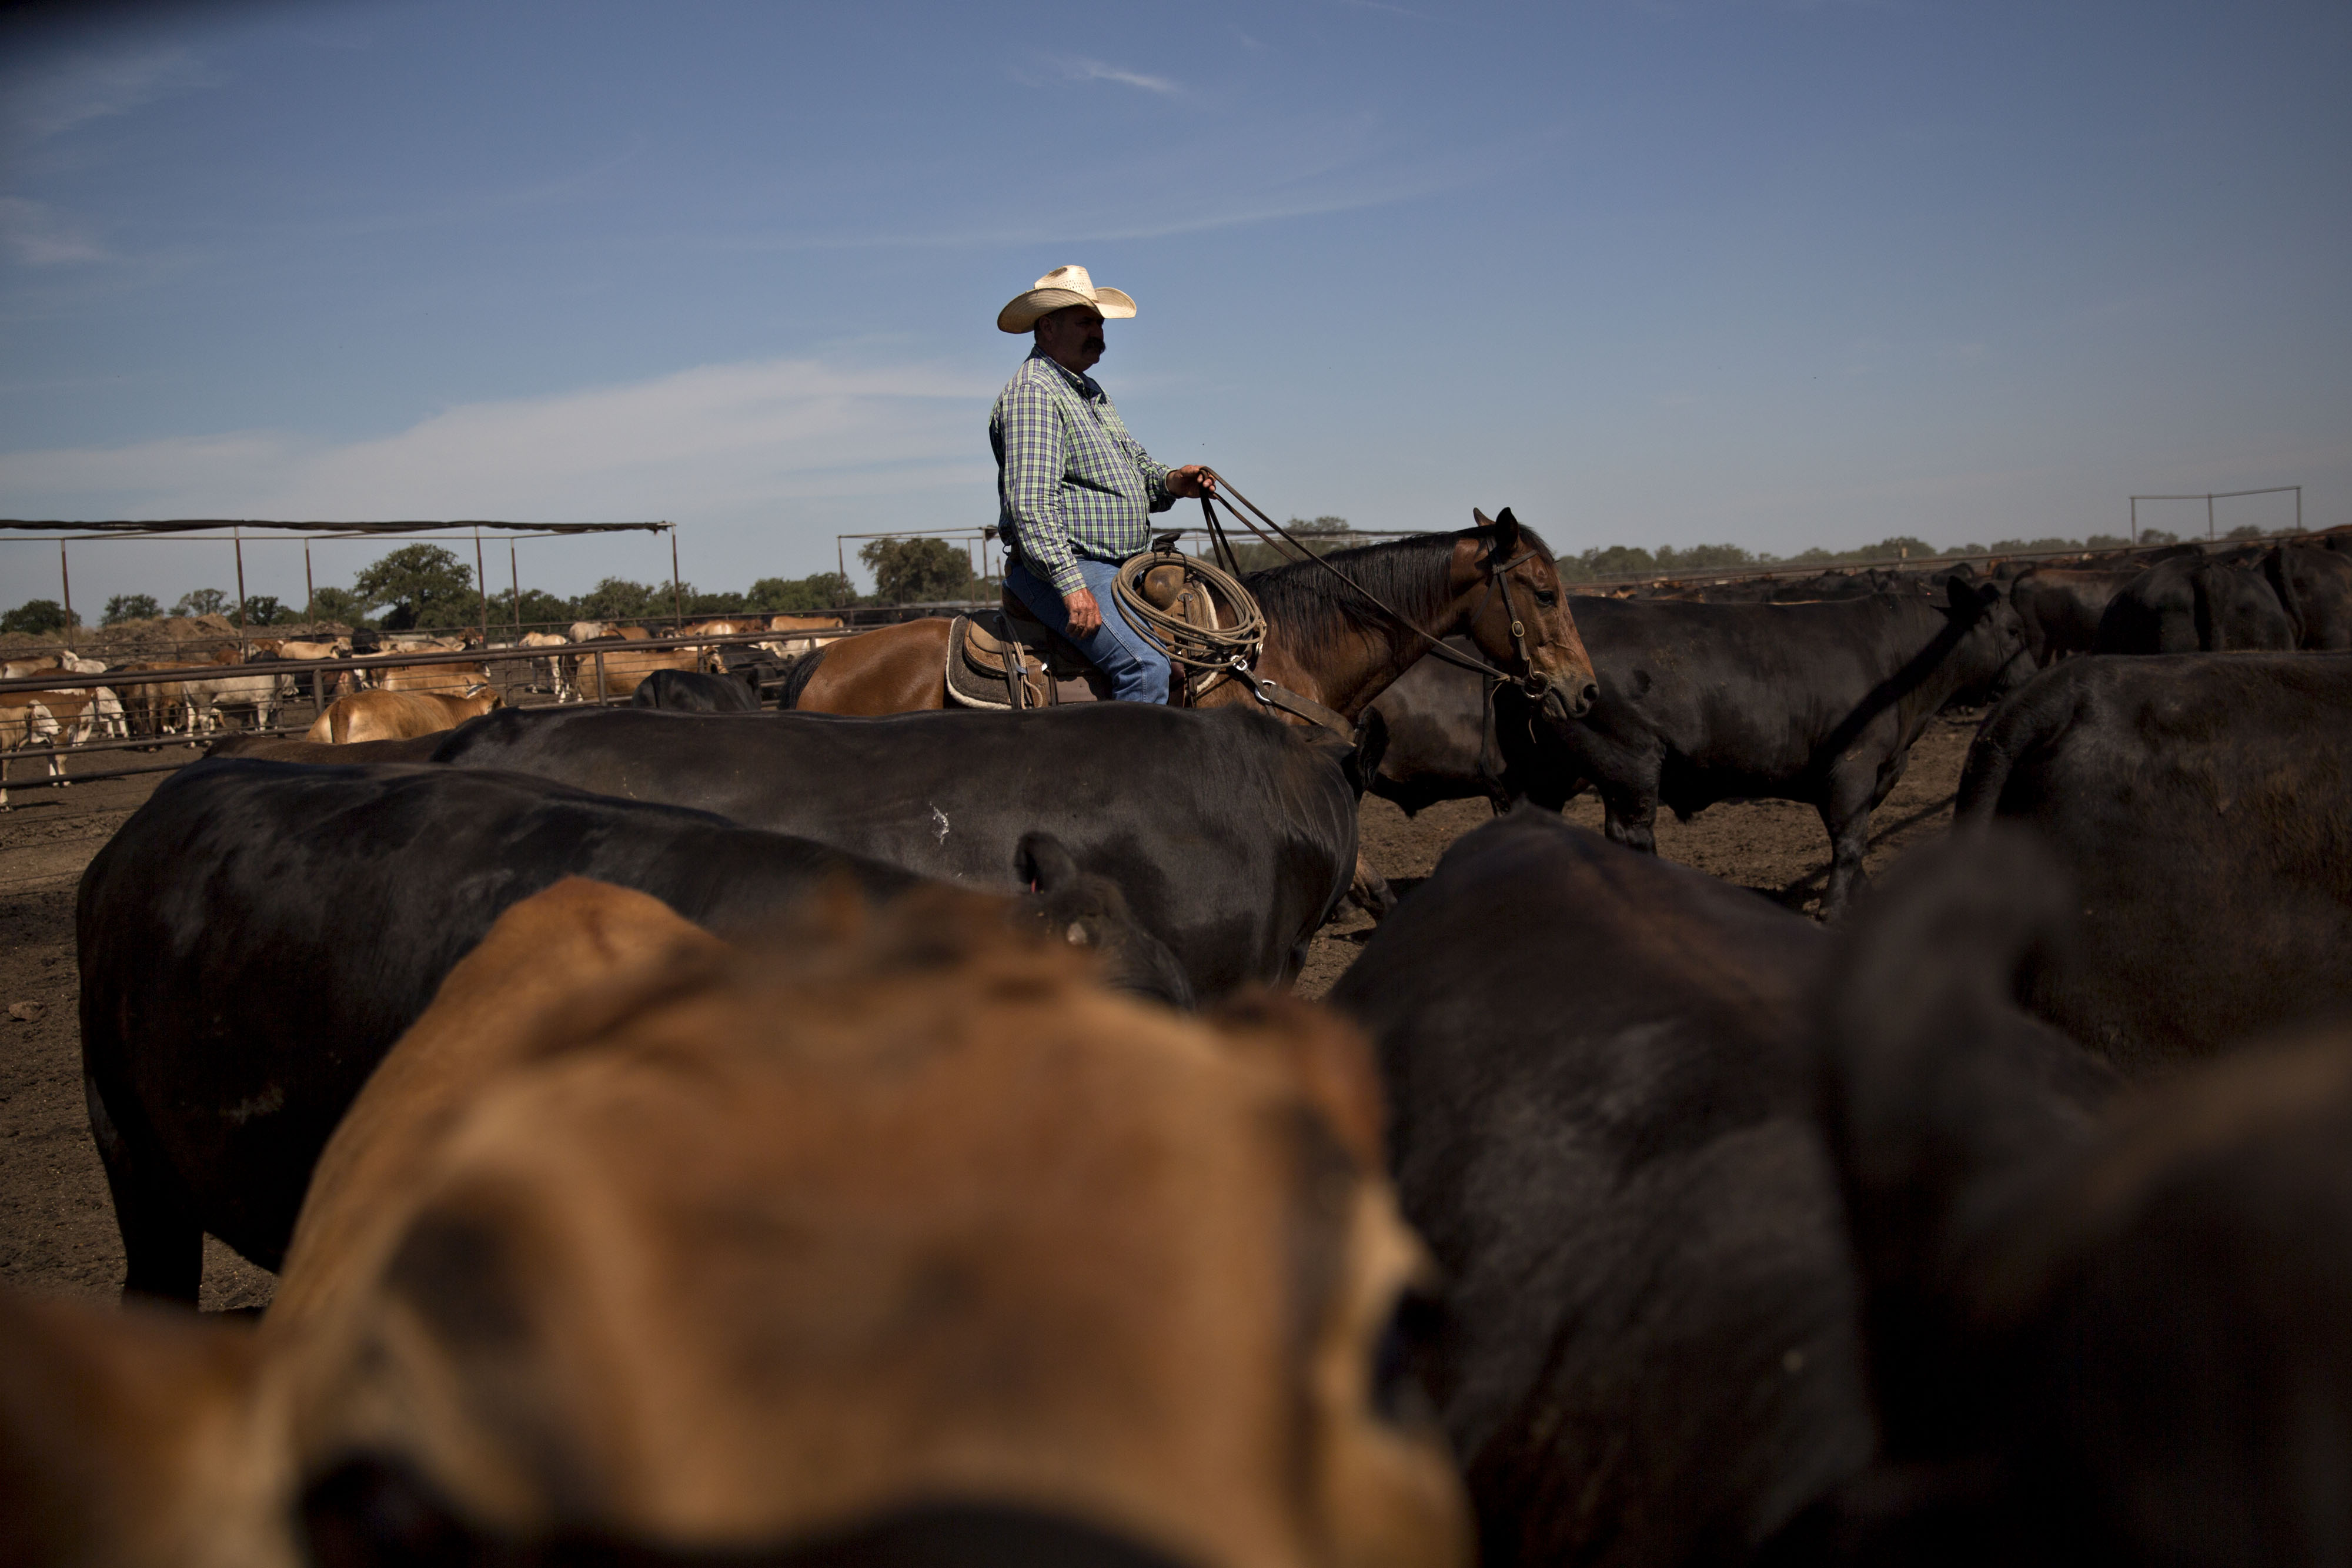 Operations At Texana Feeders Beef Cattle Feedlot As Trump Led U.S. To Brink Of Trade War